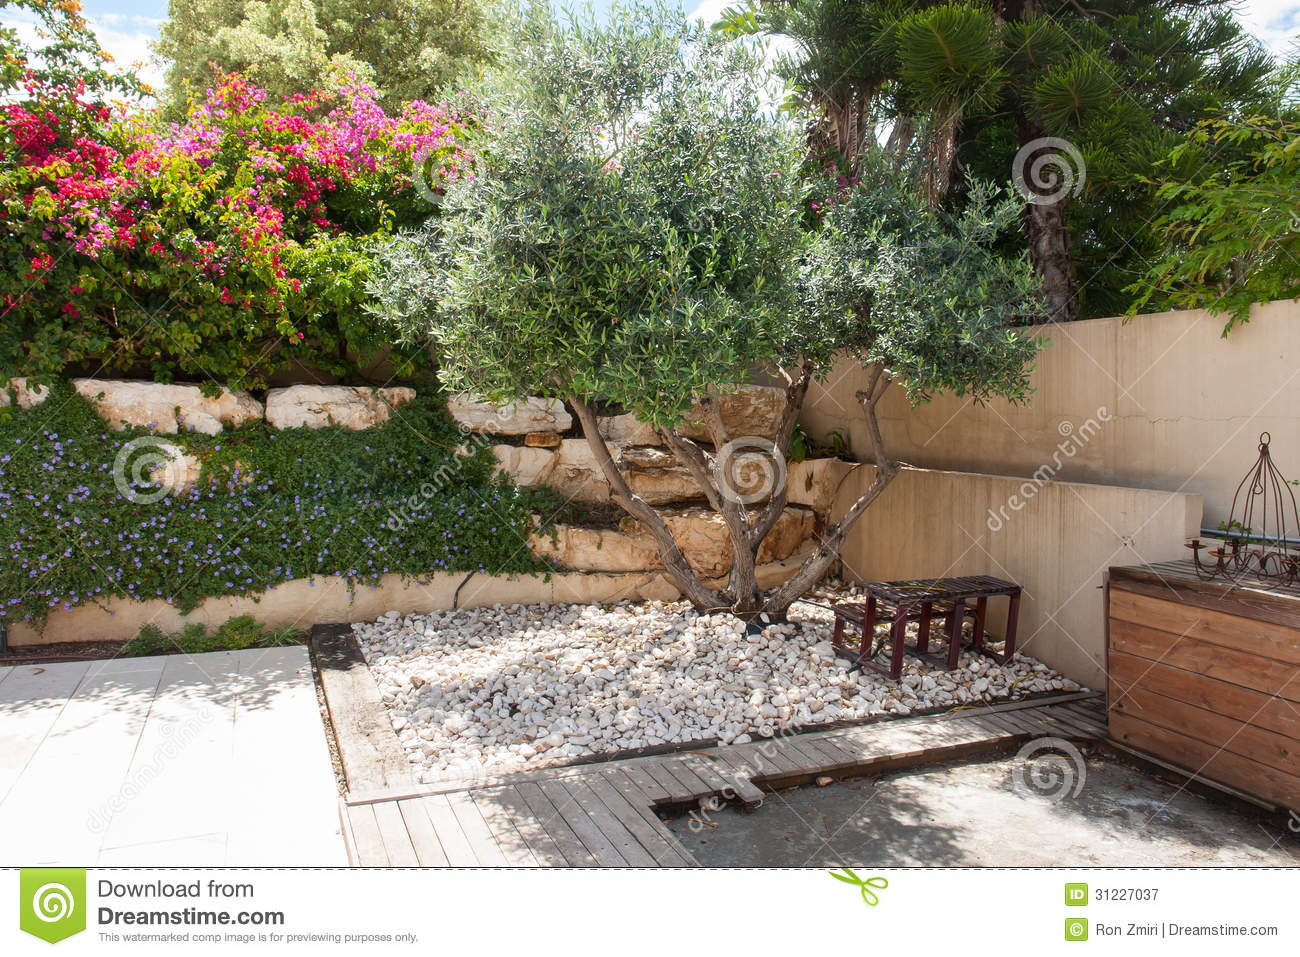 Jardin m diterran en classique de beauatiful photographie stock libre de droits image 31227037 for Zen terras layouts